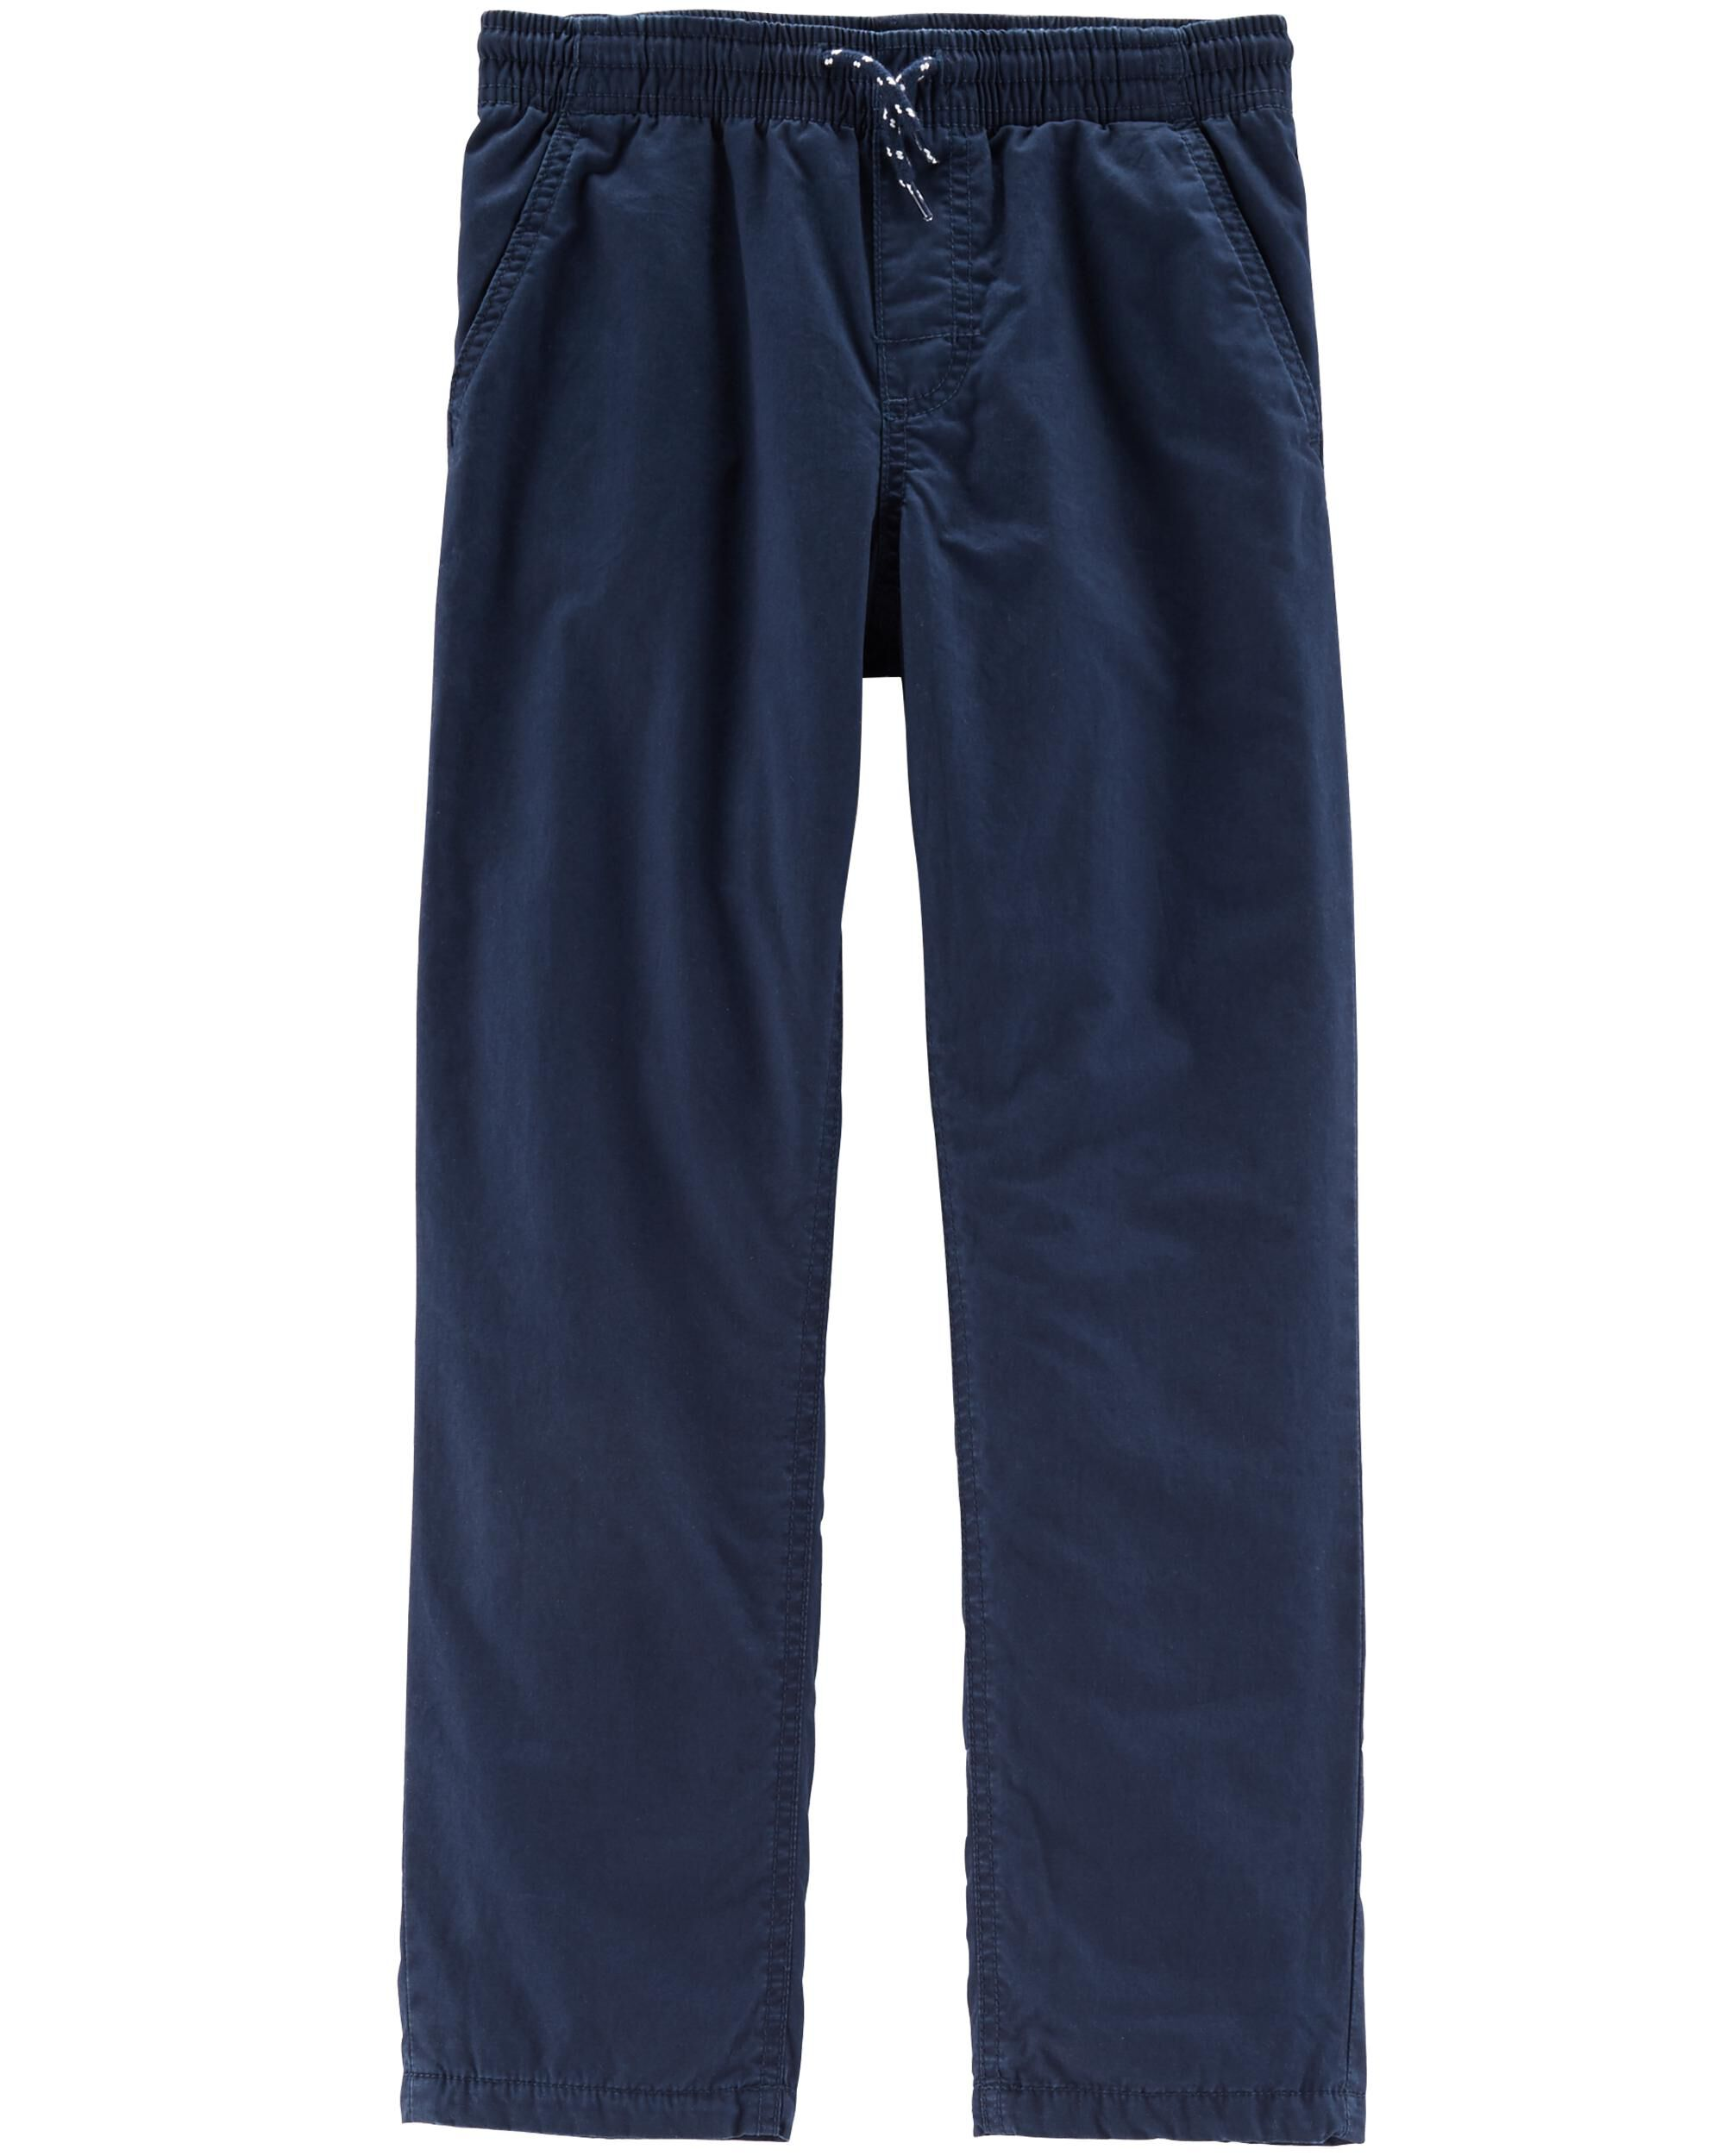 *Clearance*  Lined Pull-On Pants